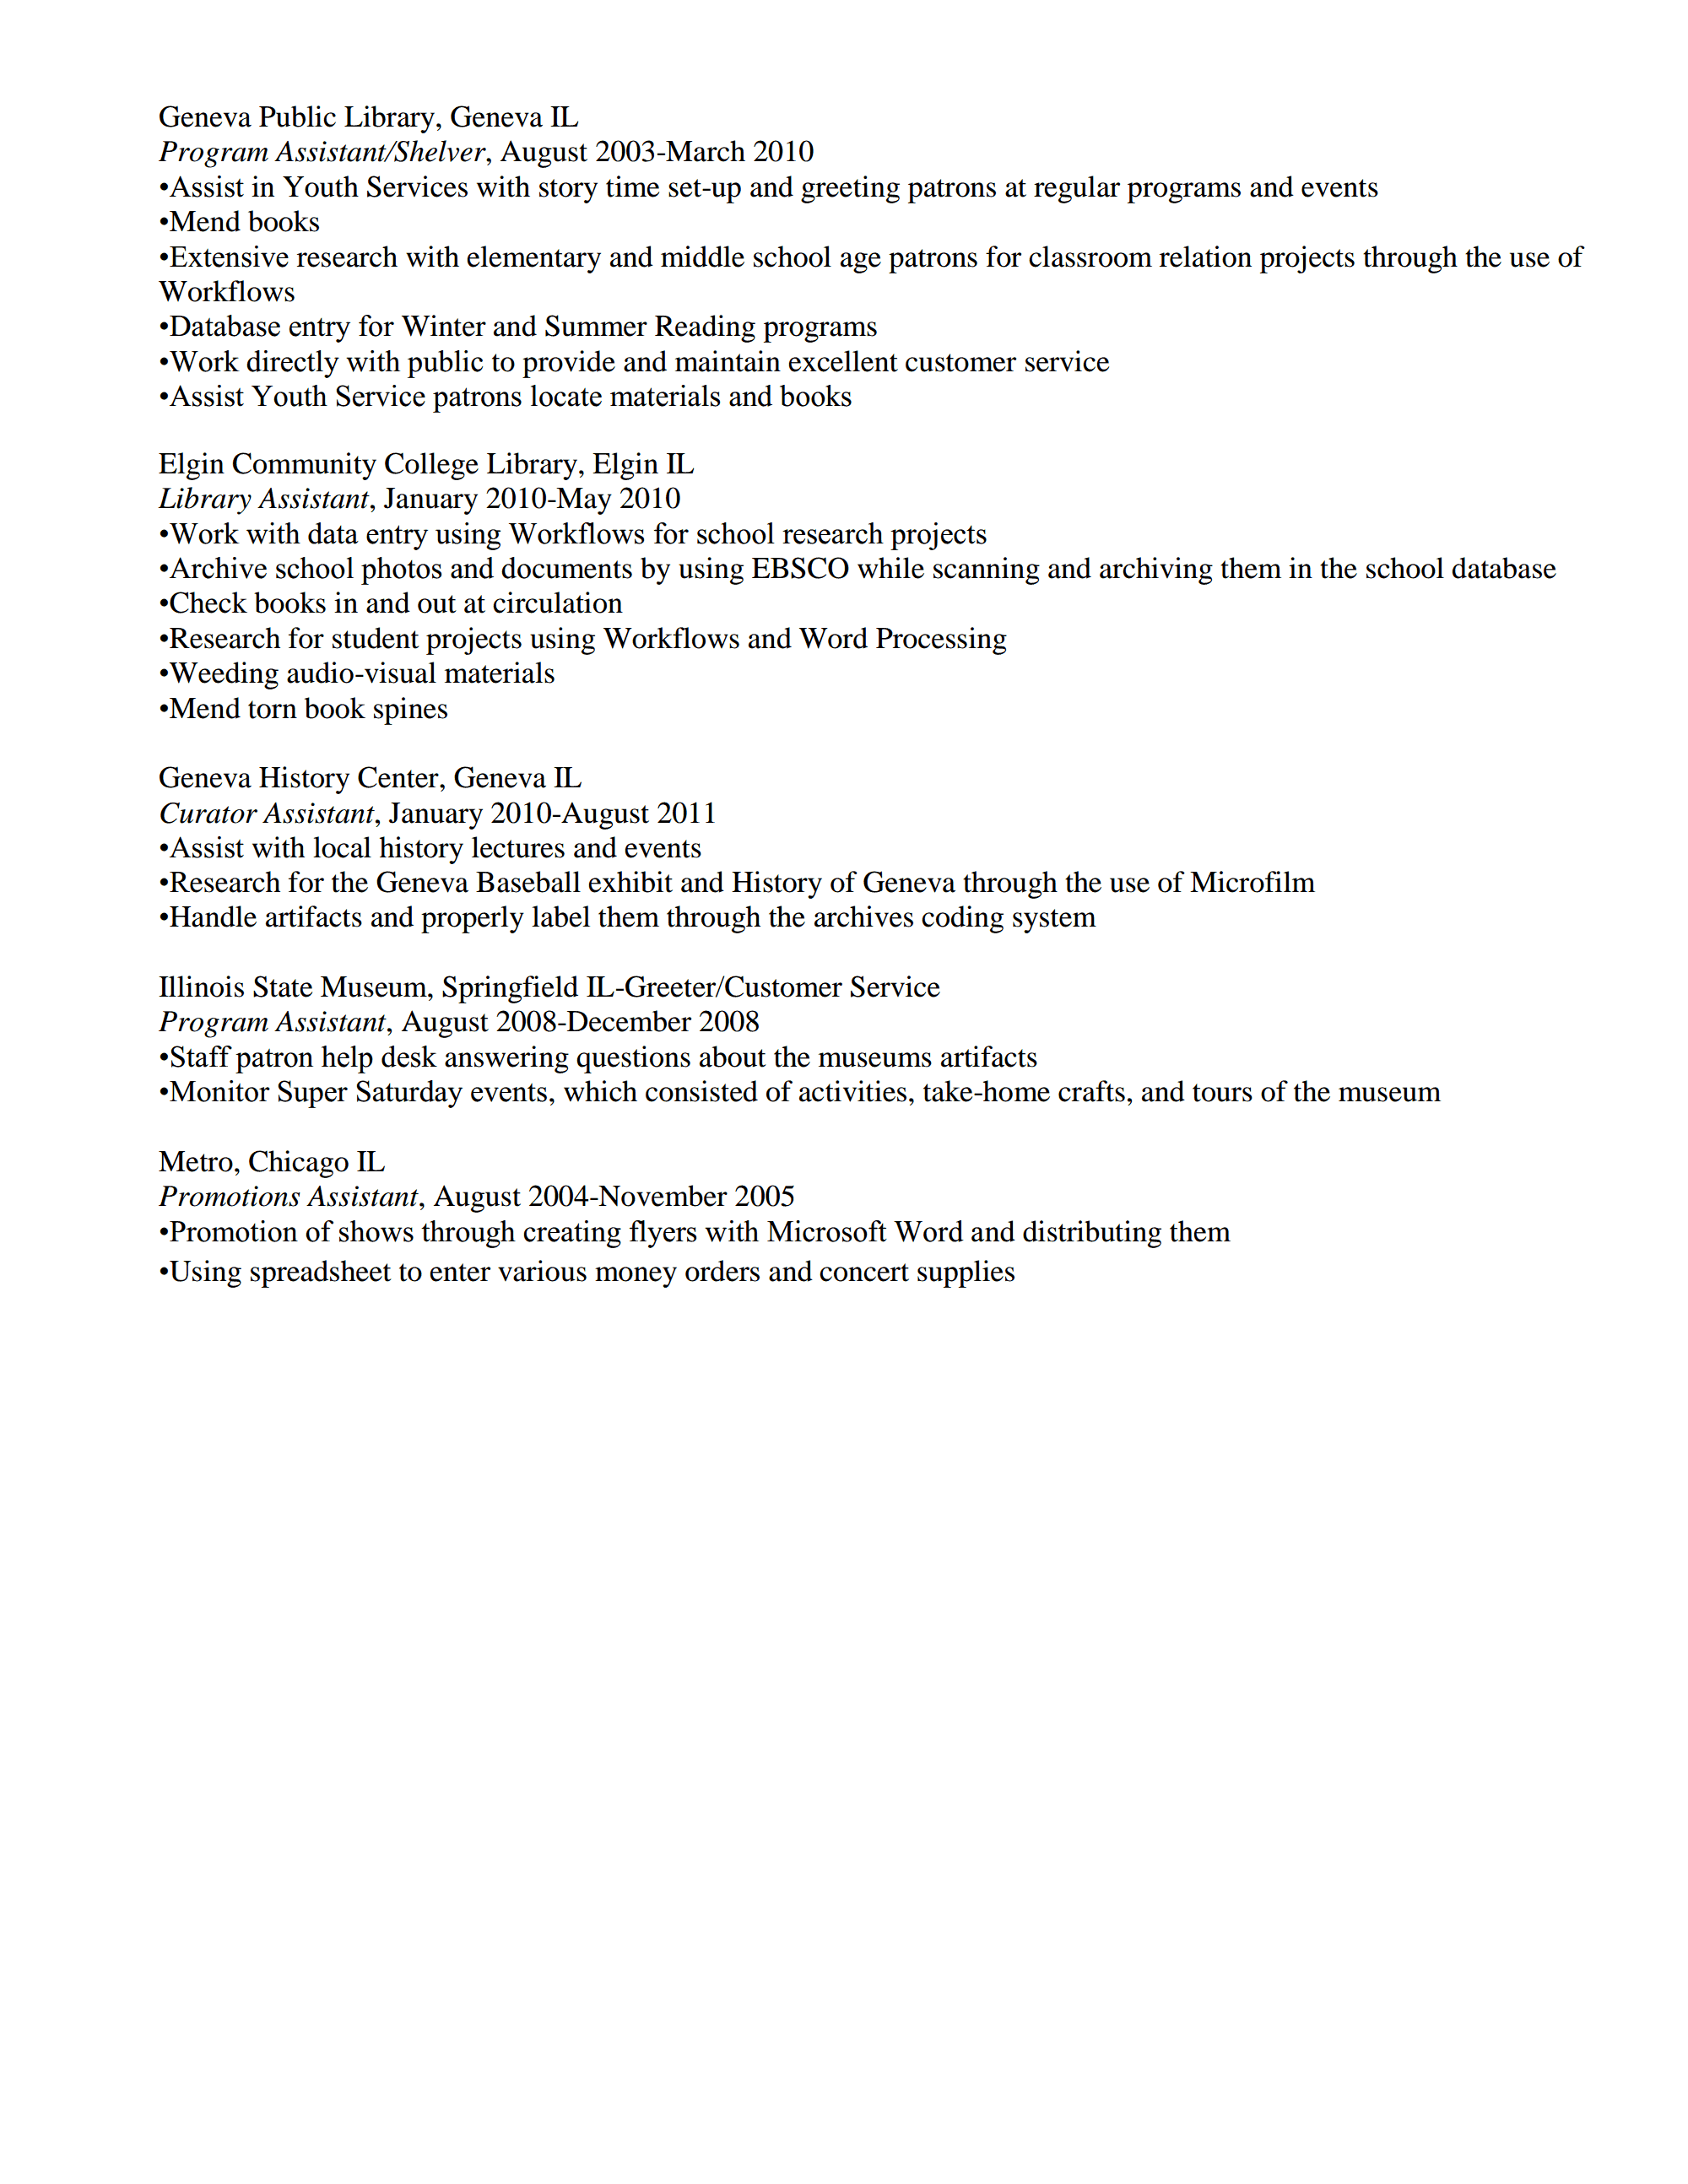 for public review matthew johnson - Sample School Librarian Resume